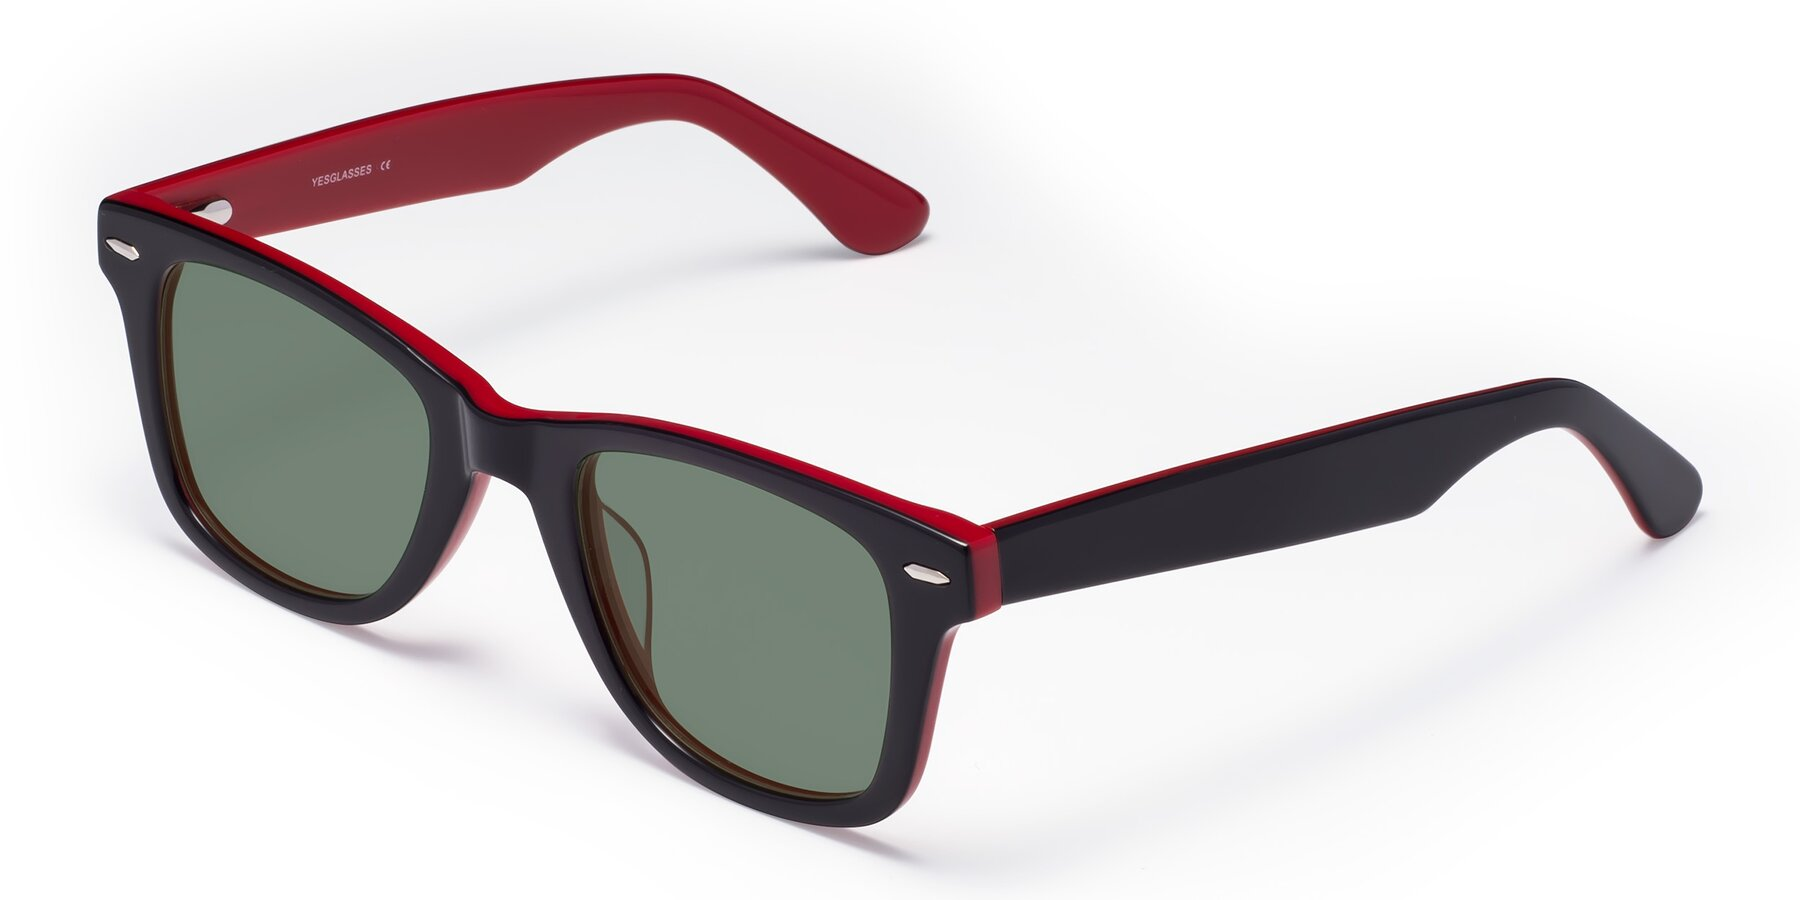 Angle of Rocky in Black-Wine with Medium Green Tinted Lenses